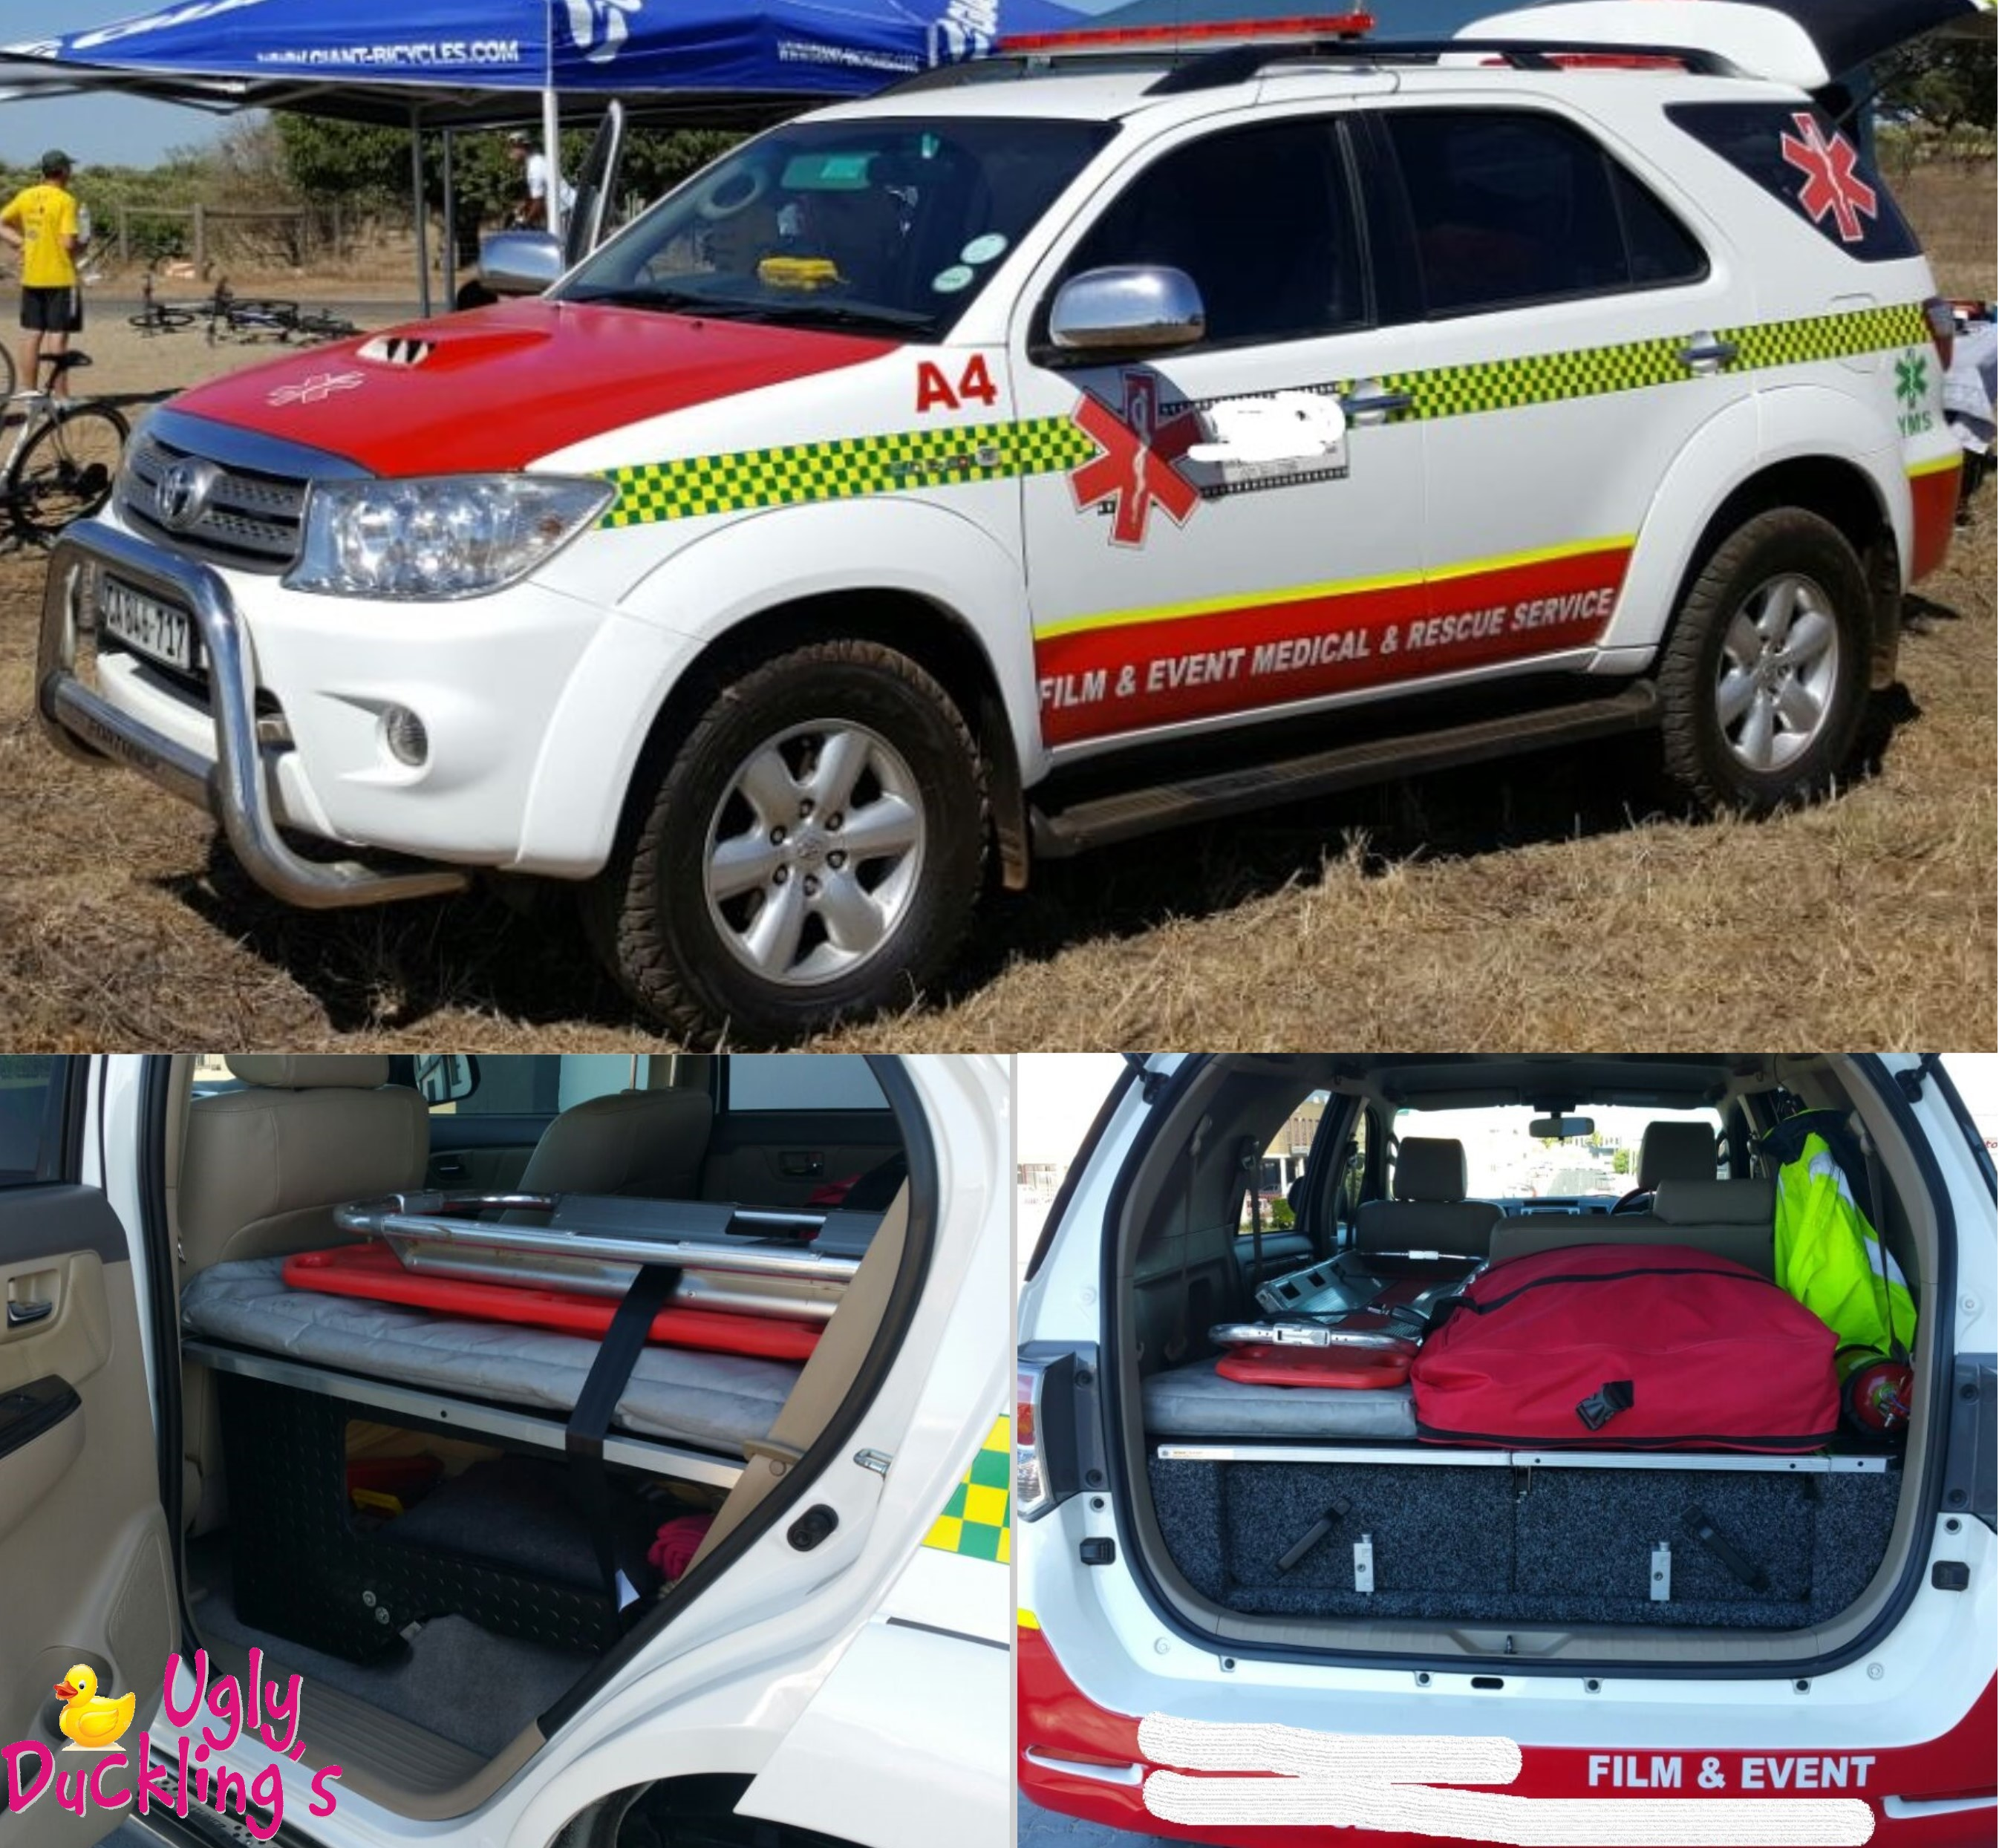 2011 Toyota Fortuner Emergency Vehicle